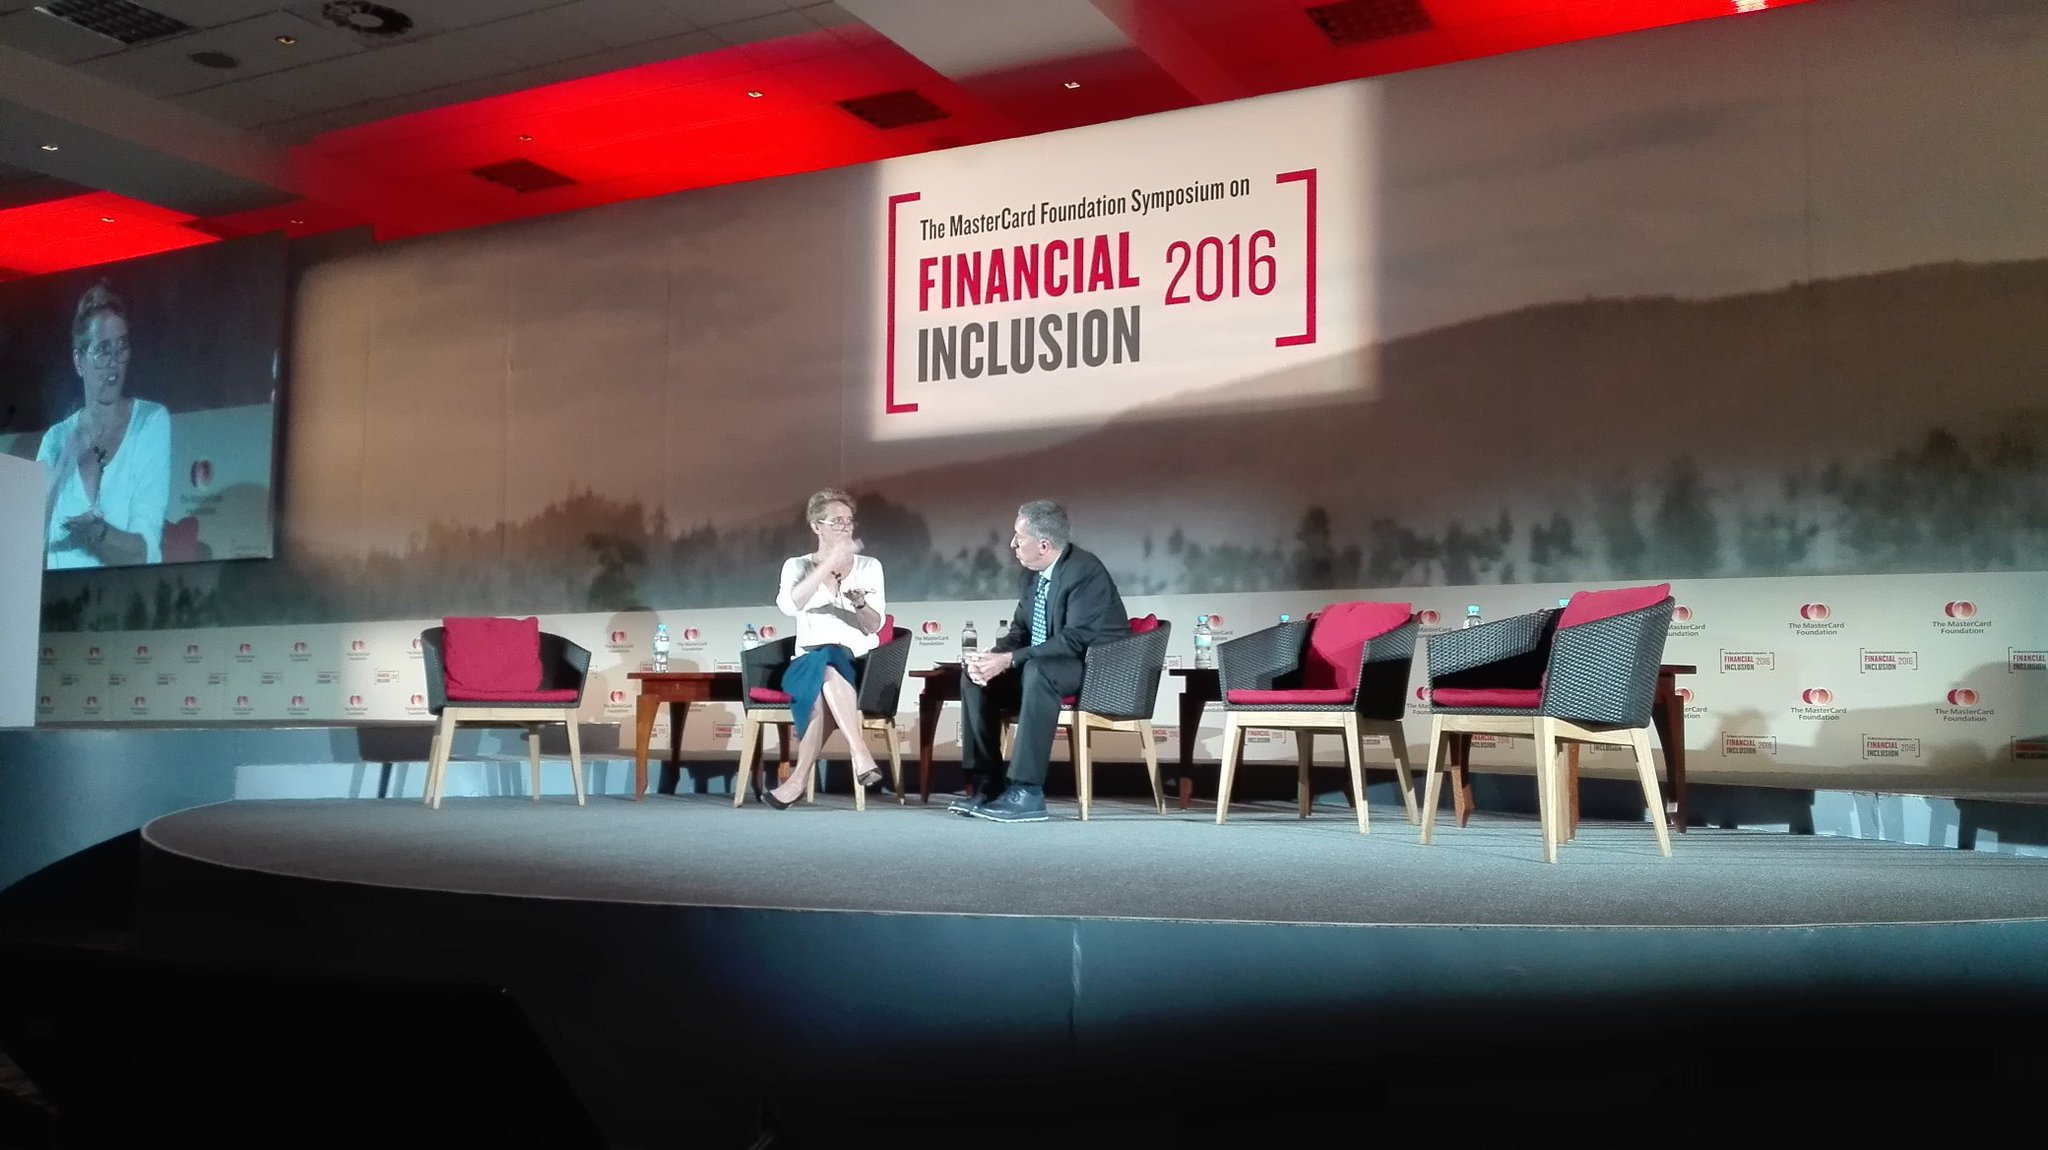 Just because someone isn't financially included doesn't mean they don't want to be, says behavioral scientist Eldar Shafir. #SoFI2016 https://t.co/LP3S0zRBeB